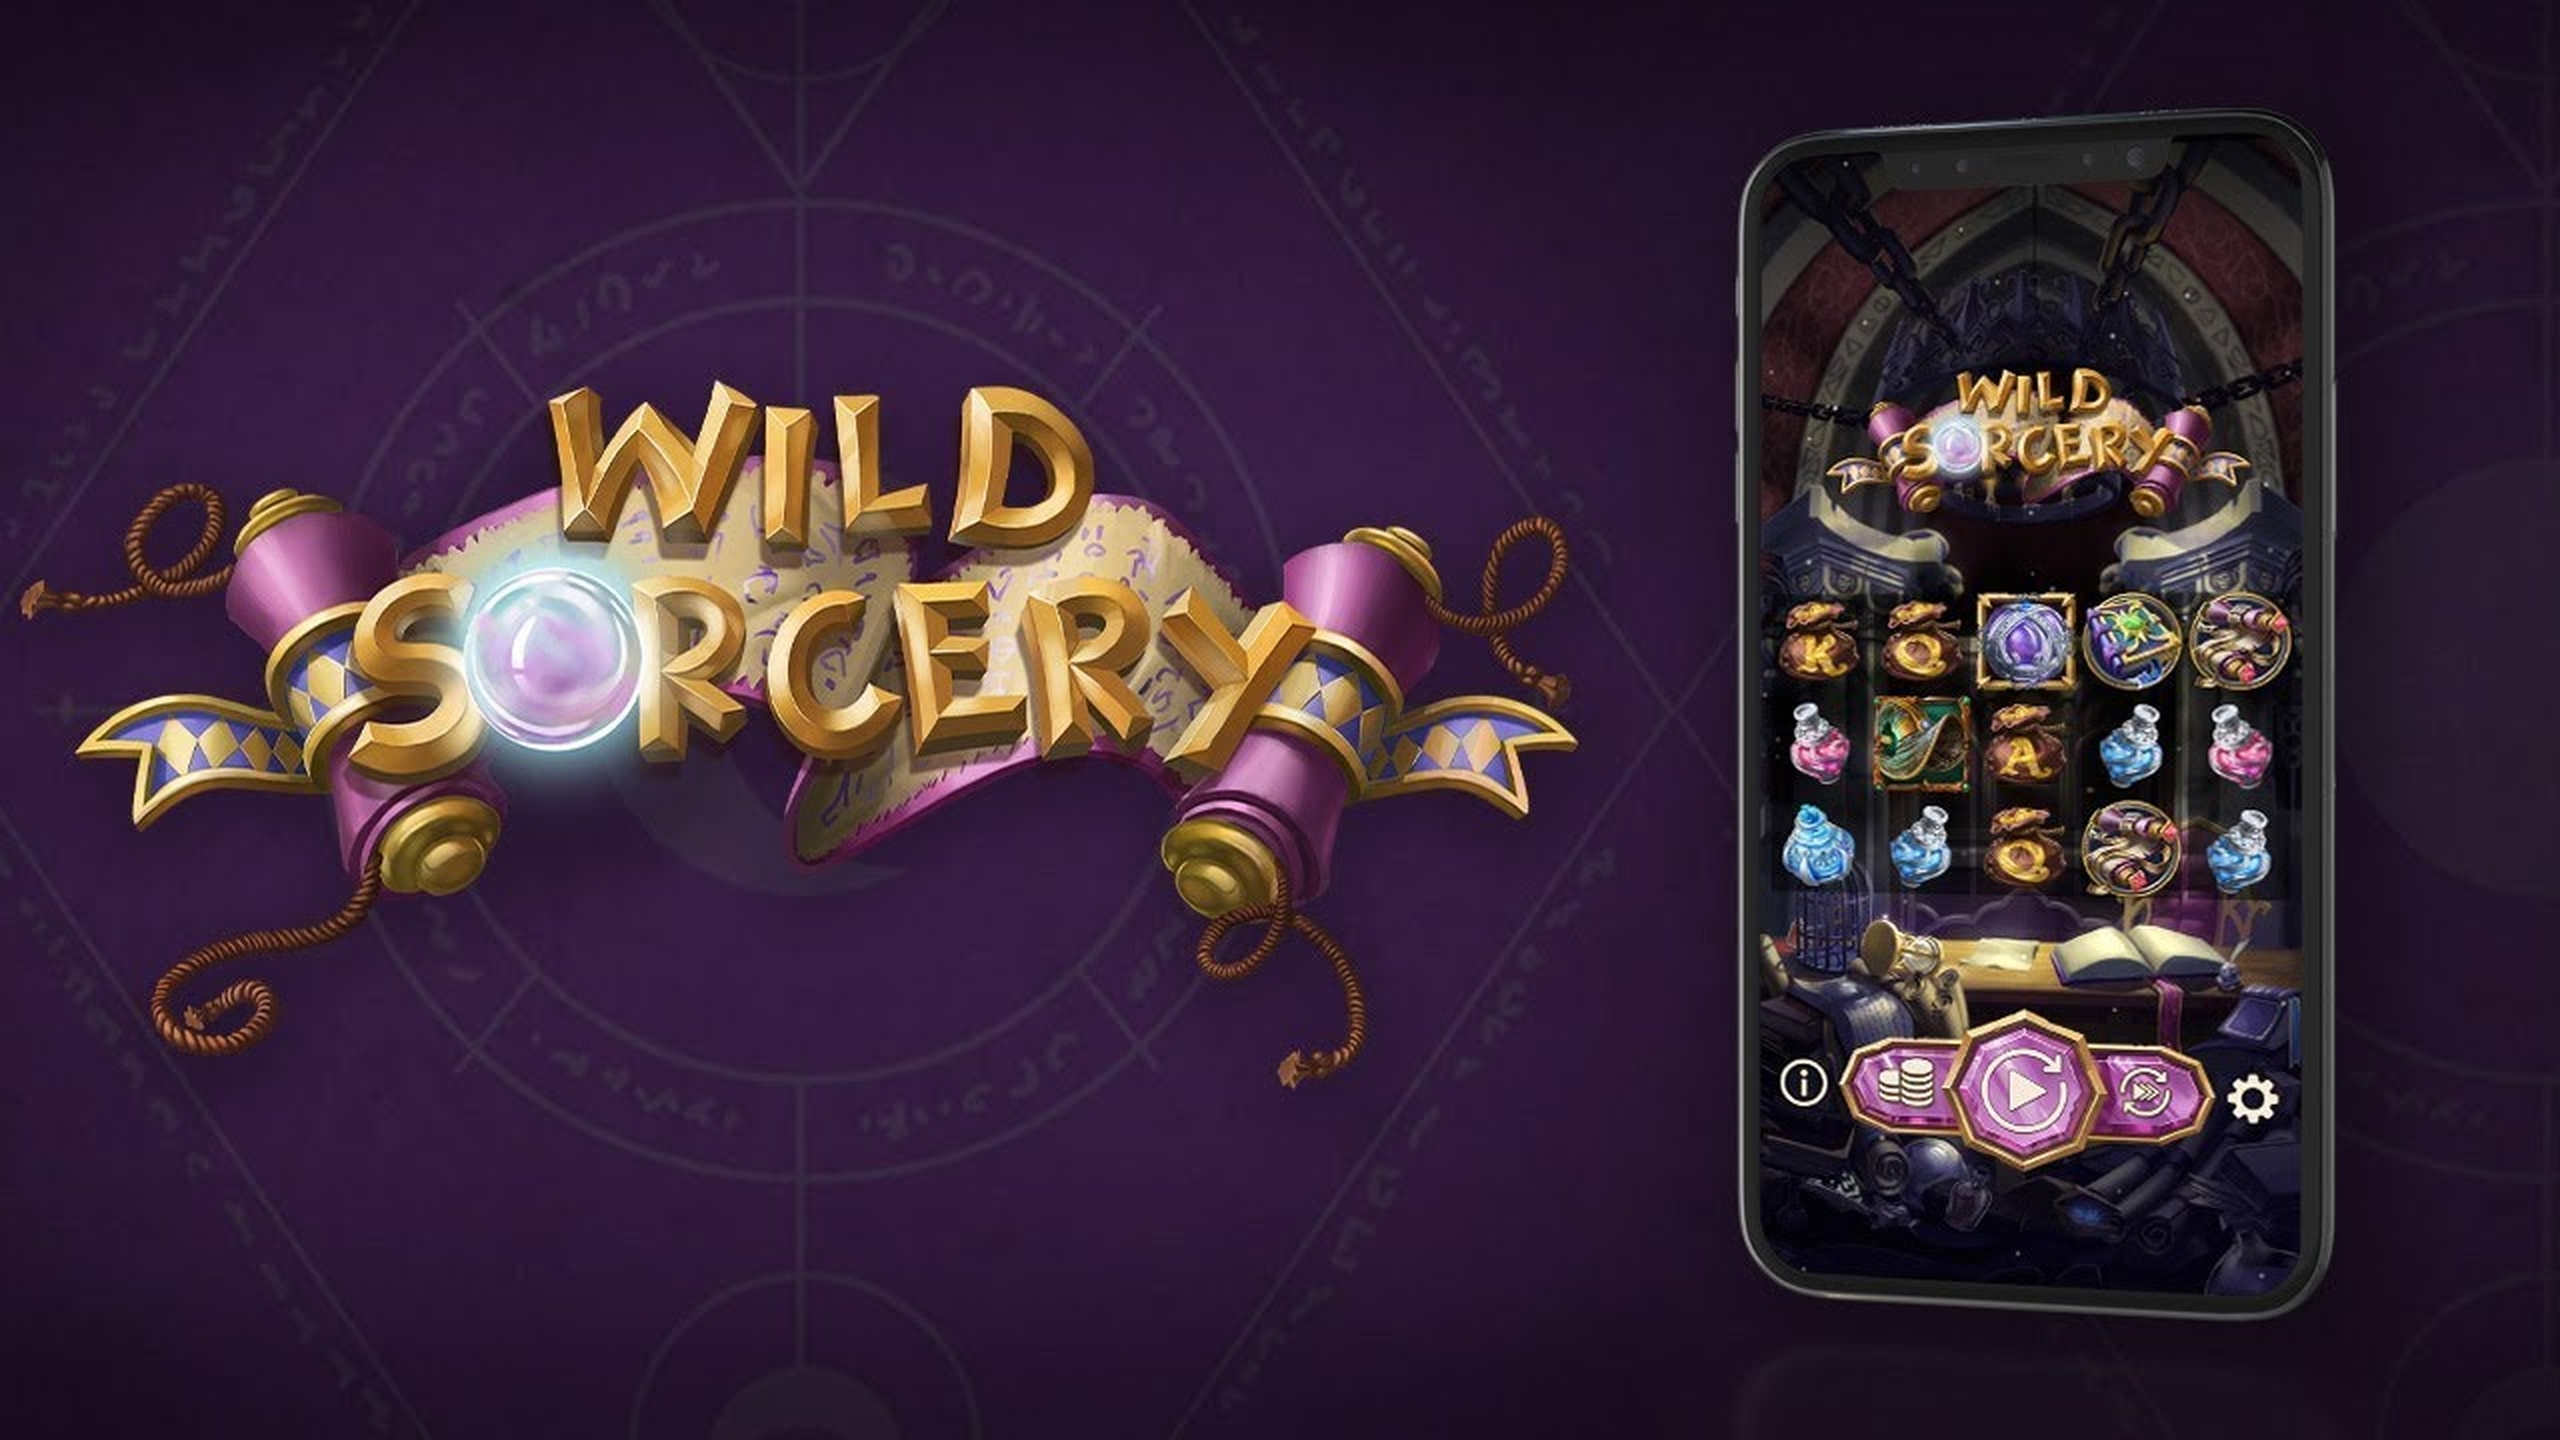 The Wild Sorcery Online Slot Demo Game by OneTouch Games